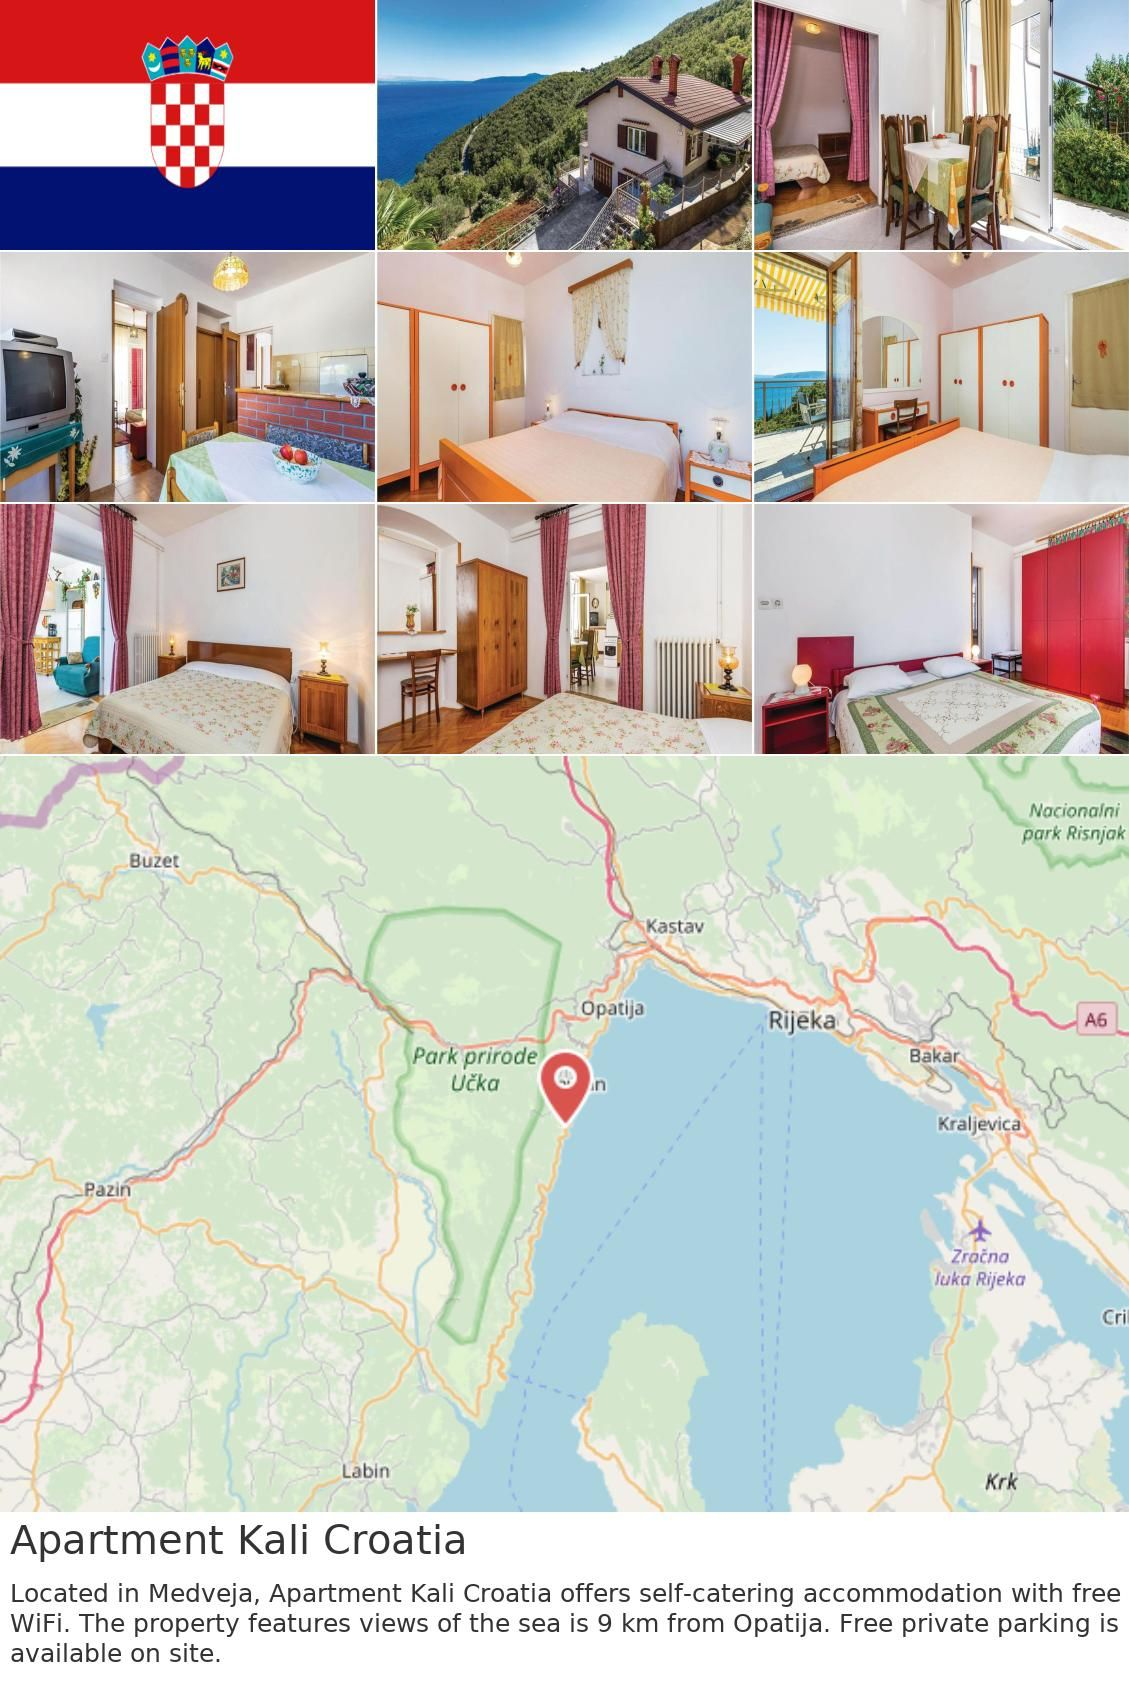 Europe Croatia Medveja Apartment Kali Croatia Located In Medveja Apartment Kali Croatia Offers Self Catering Accommodatio Croatia Apartment Accommodations